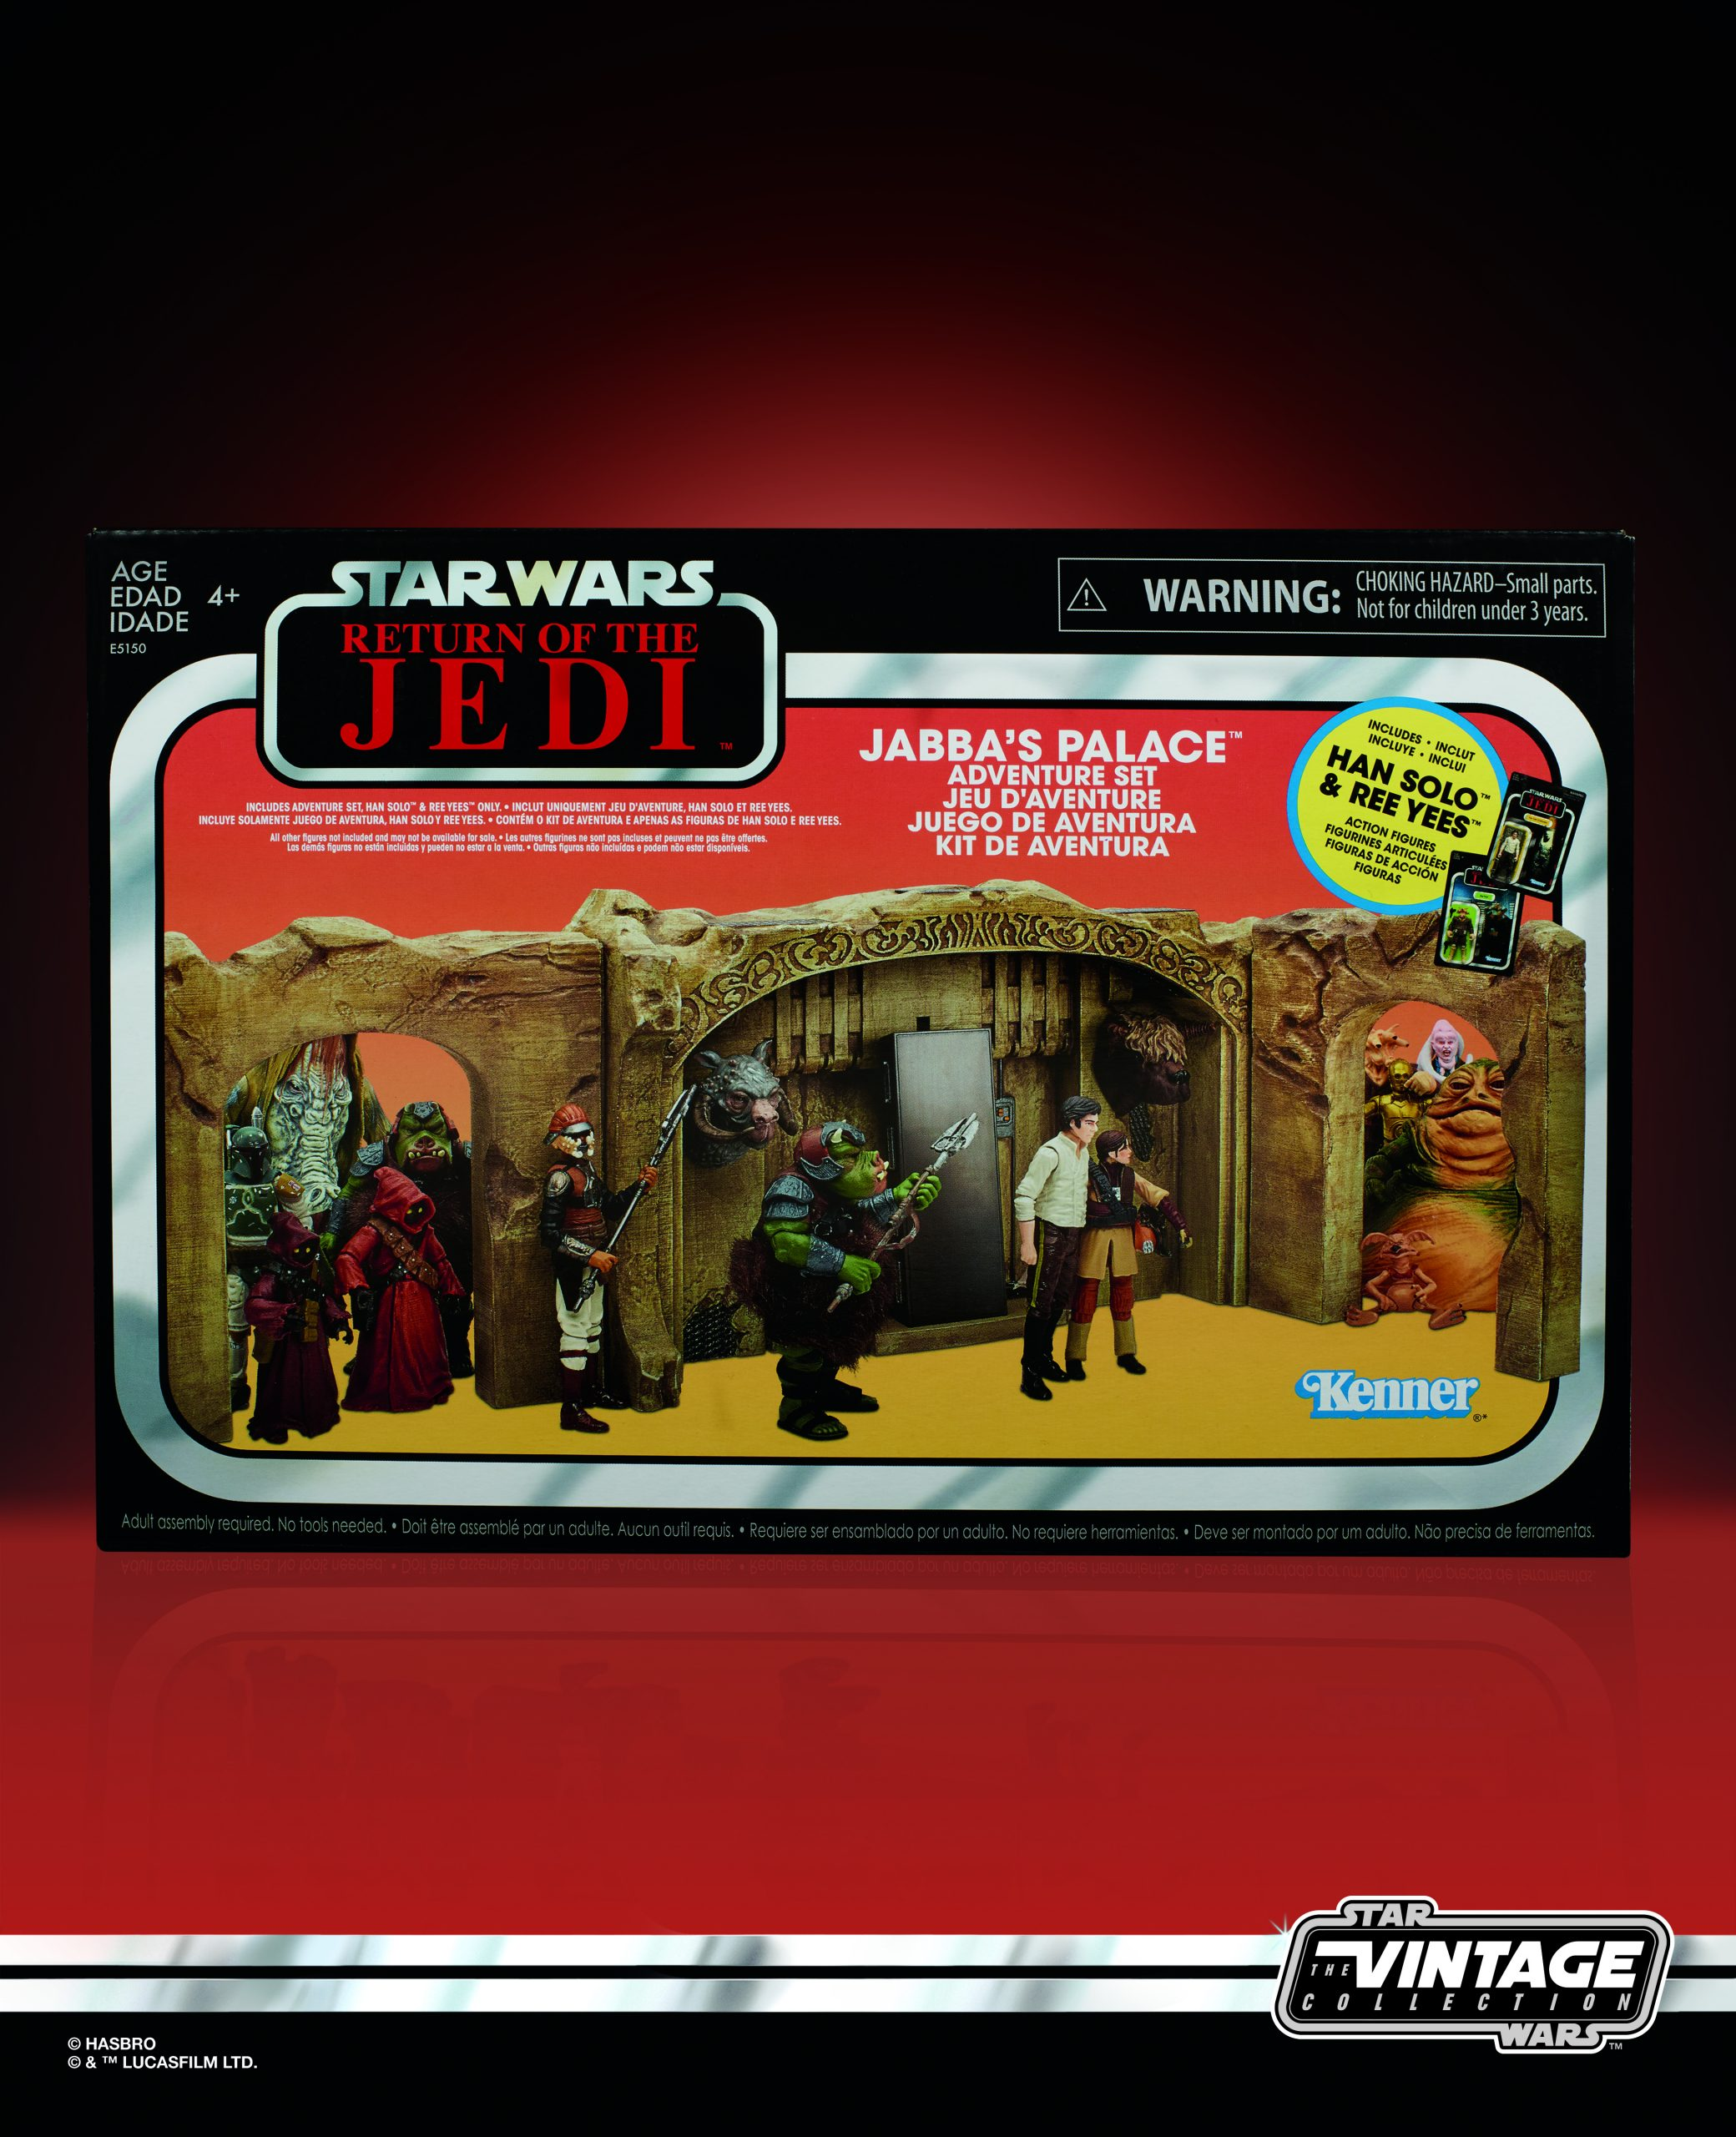 Hasbro NYTF 2019 – Official Star Wars Press Release